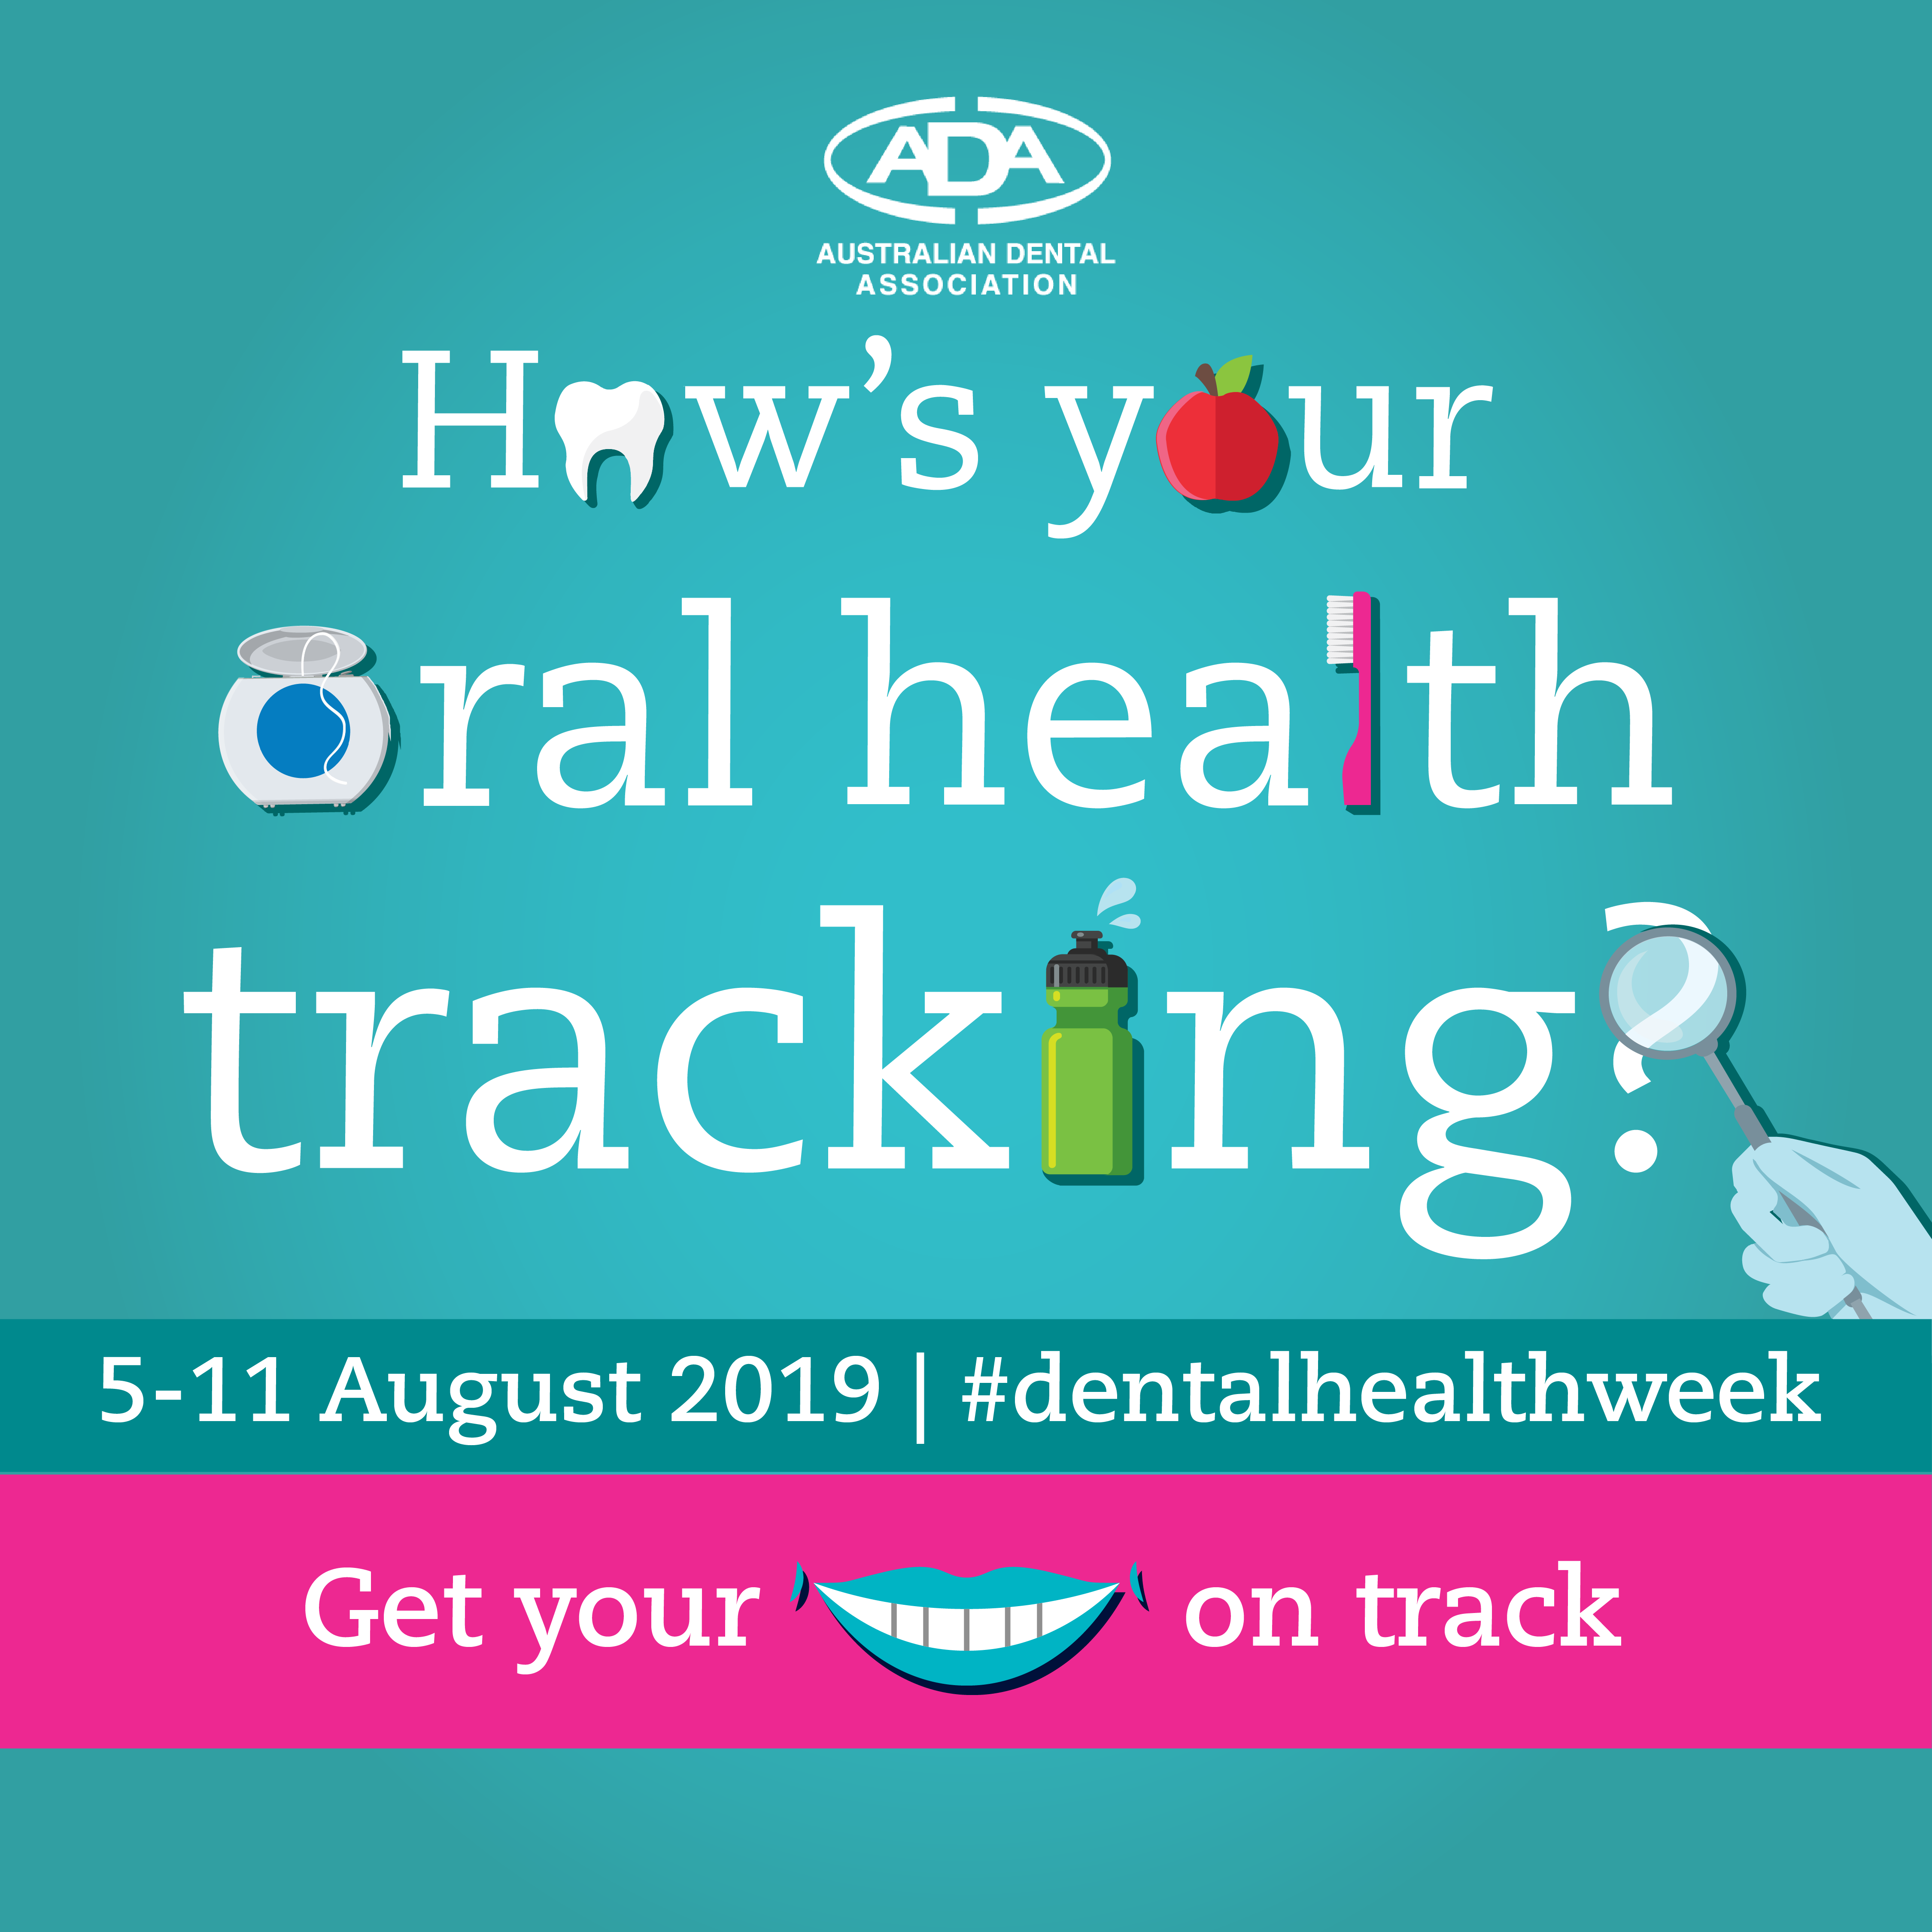 Image: Dental Health Week 2019: How's your Oral Health Tracking?